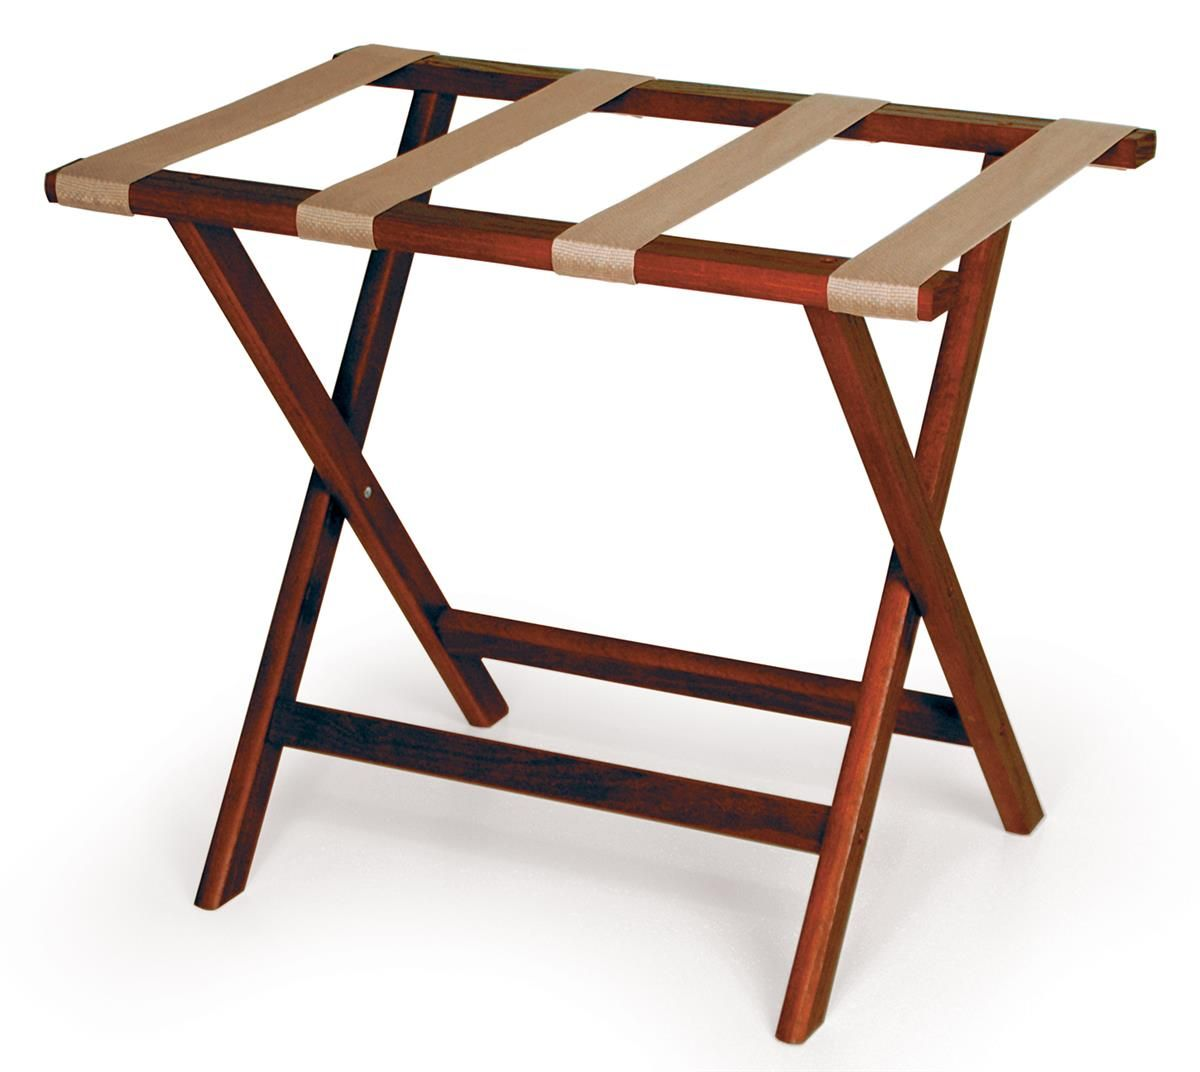 Wooden Luggage Rack Mahogany With Tan Straps Luggage Rack